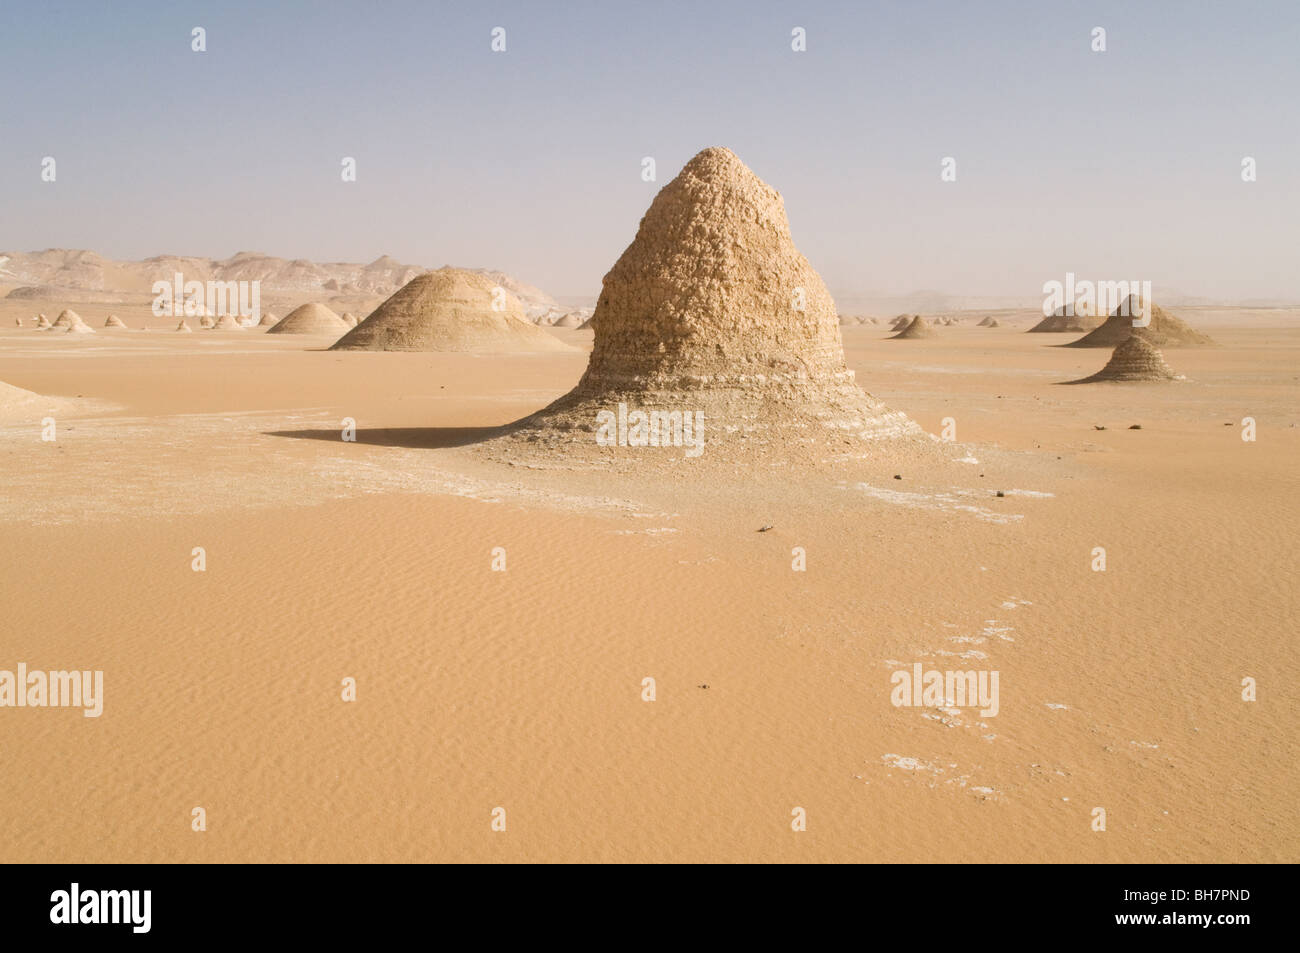 Eroded yardang mounds located in the Western Desert region of the Egyptian Sahara, between Ain Dalla and Farafra Stock Photo